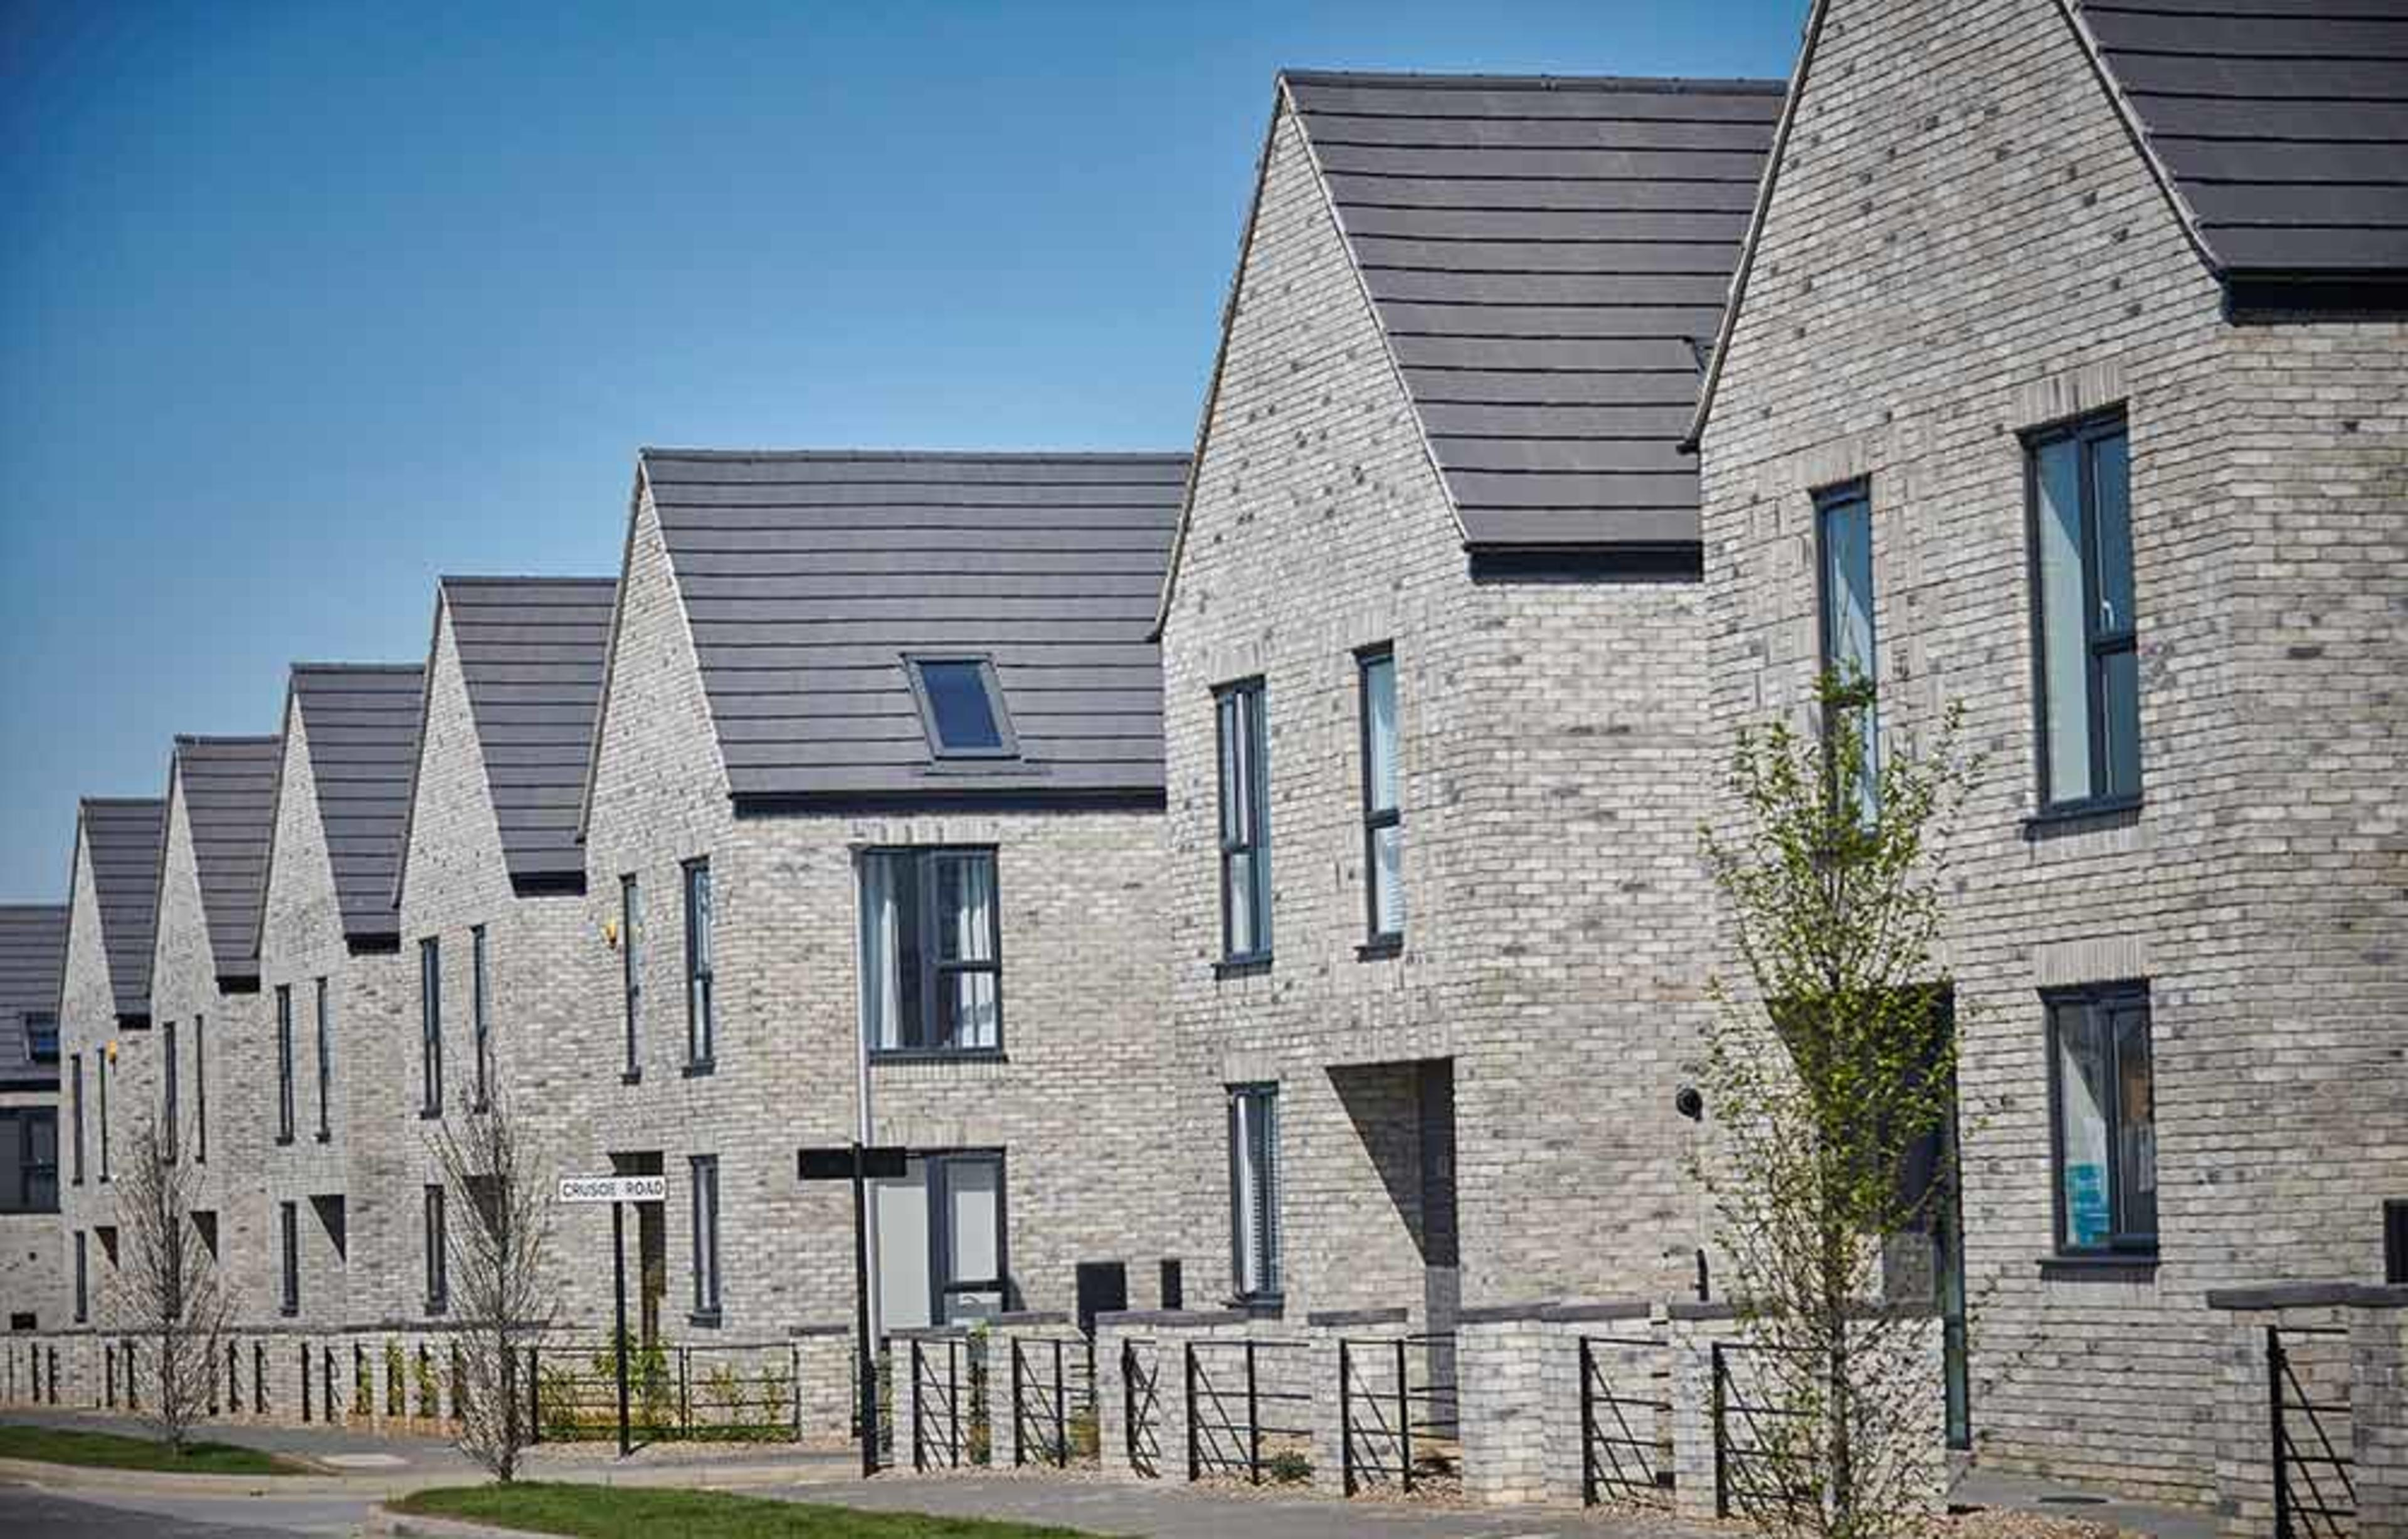 A row of new-build detached homes at the Meaux Rise development